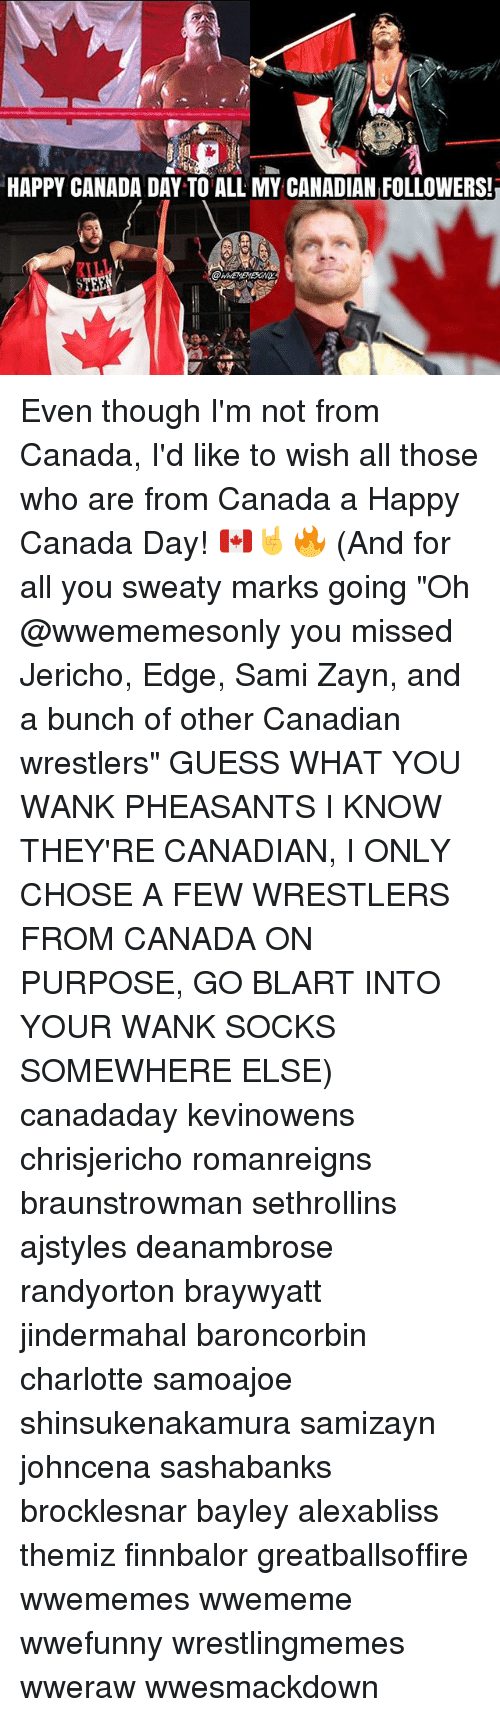 "Wankes: HAPPY CANADA DAY TO ALL MY CANADIAN FOLLOWERS!  KILL Even though I'm not from Canada, I'd like to wish all those who are from Canada a Happy Canada Day! 🇨🇦🤘🔥 (And for all you sweaty marks going ""Oh @wwememesonly you missed Jericho, Edge, Sami Zayn, and a bunch of other Canadian wrestlers"" GUESS WHAT YOU WANK PHEASANTS I KNOW THEY'RE CANADIAN, I ONLY CHOSE A FEW WRESTLERS FROM CANADA ON PURPOSE, GO BLART INTO YOUR WANK SOCKS SOMEWHERE ELSE) canadaday kevinowens chrisjericho romanreigns braunstrowman sethrollins ajstyles deanambrose randyorton braywyatt jindermahal baroncorbin charlotte samoajoe shinsukenakamura samizayn johncena sashabanks brocklesnar bayley alexabliss themiz finnbalor greatballsoffire wwememes wwememe wwefunny wrestlingmemes wweraw wwesmackdown"